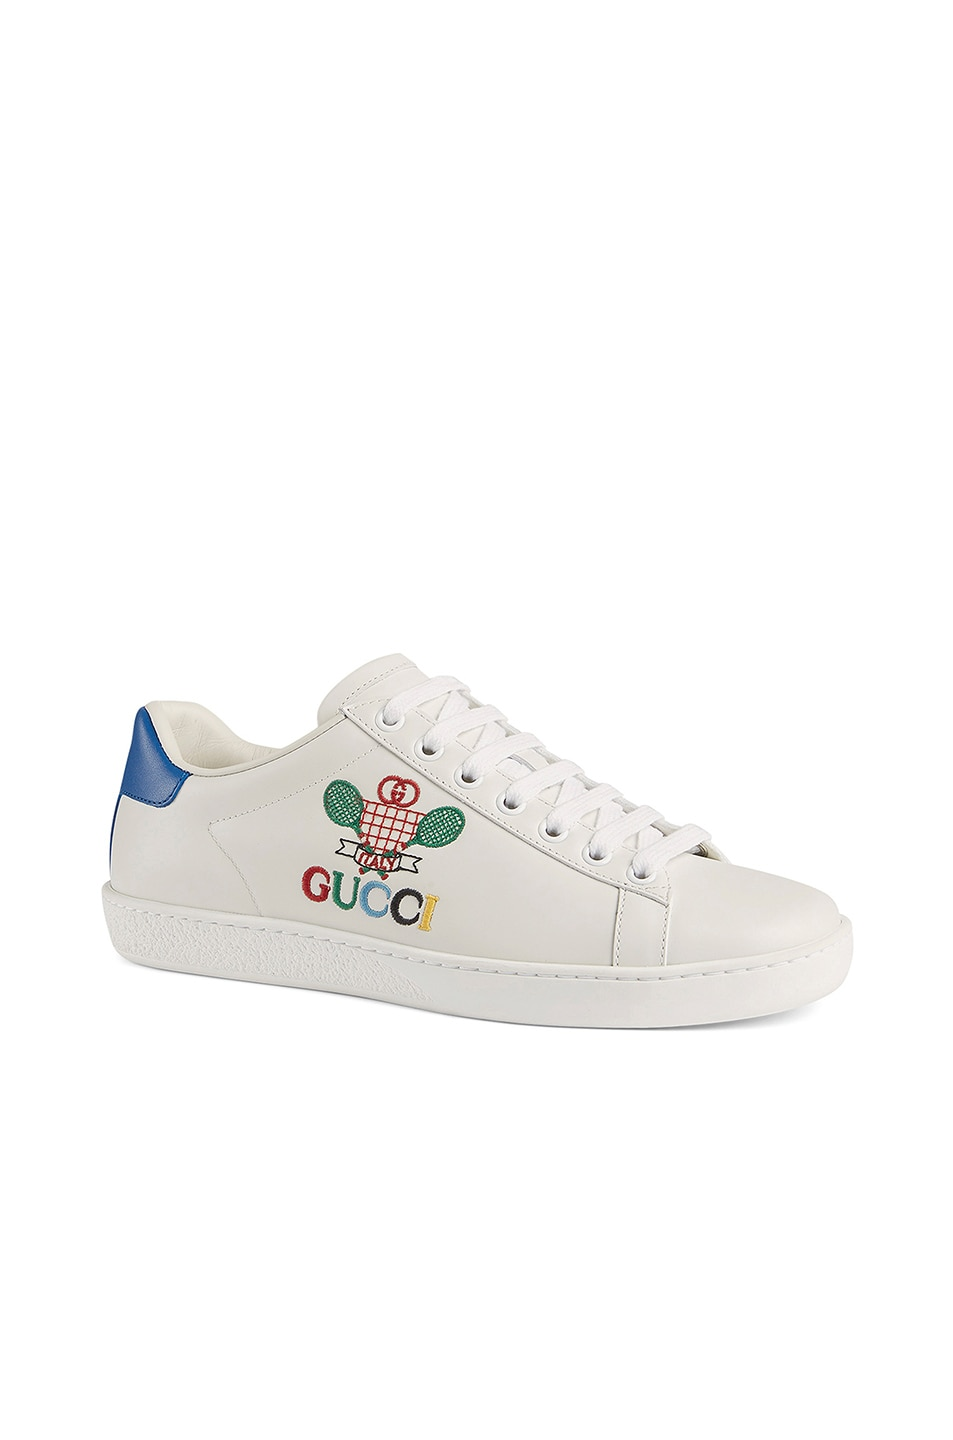 Image 2 of Gucci New Ace Tennis Sneakers in White